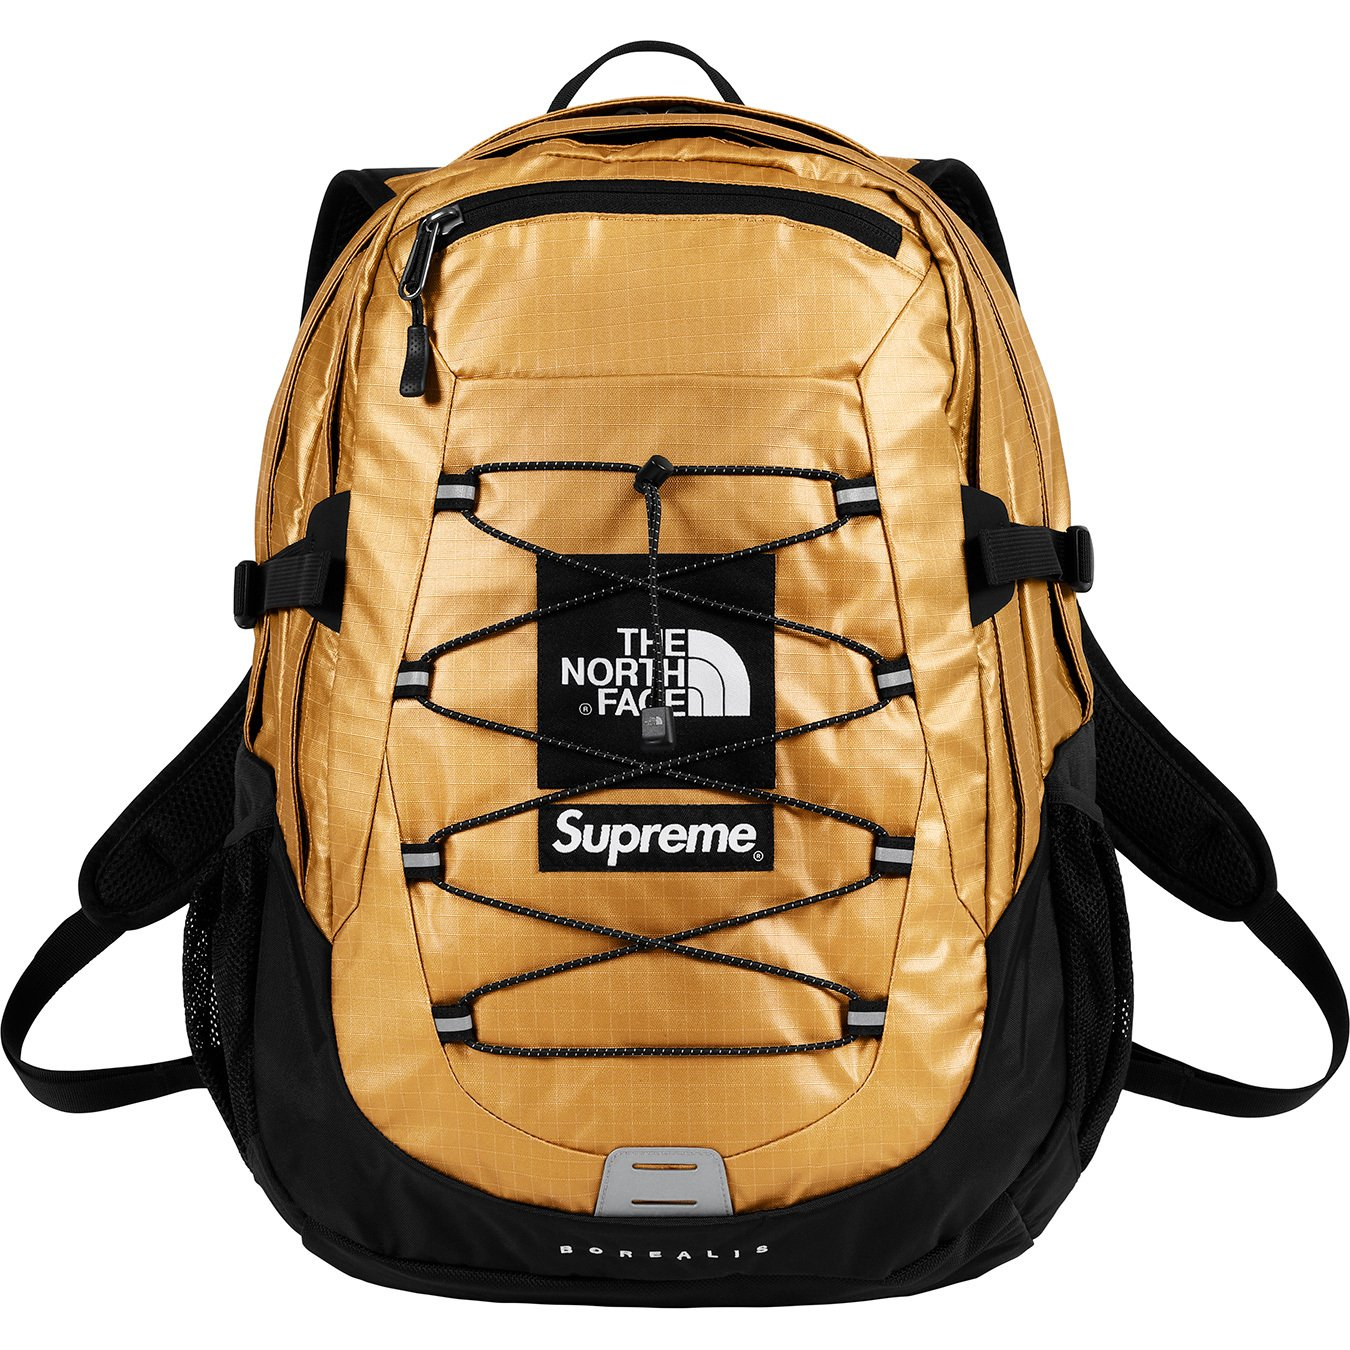 supreme-the-north-face-18ss-release-week7-20180407-metallic-borealis-backpack